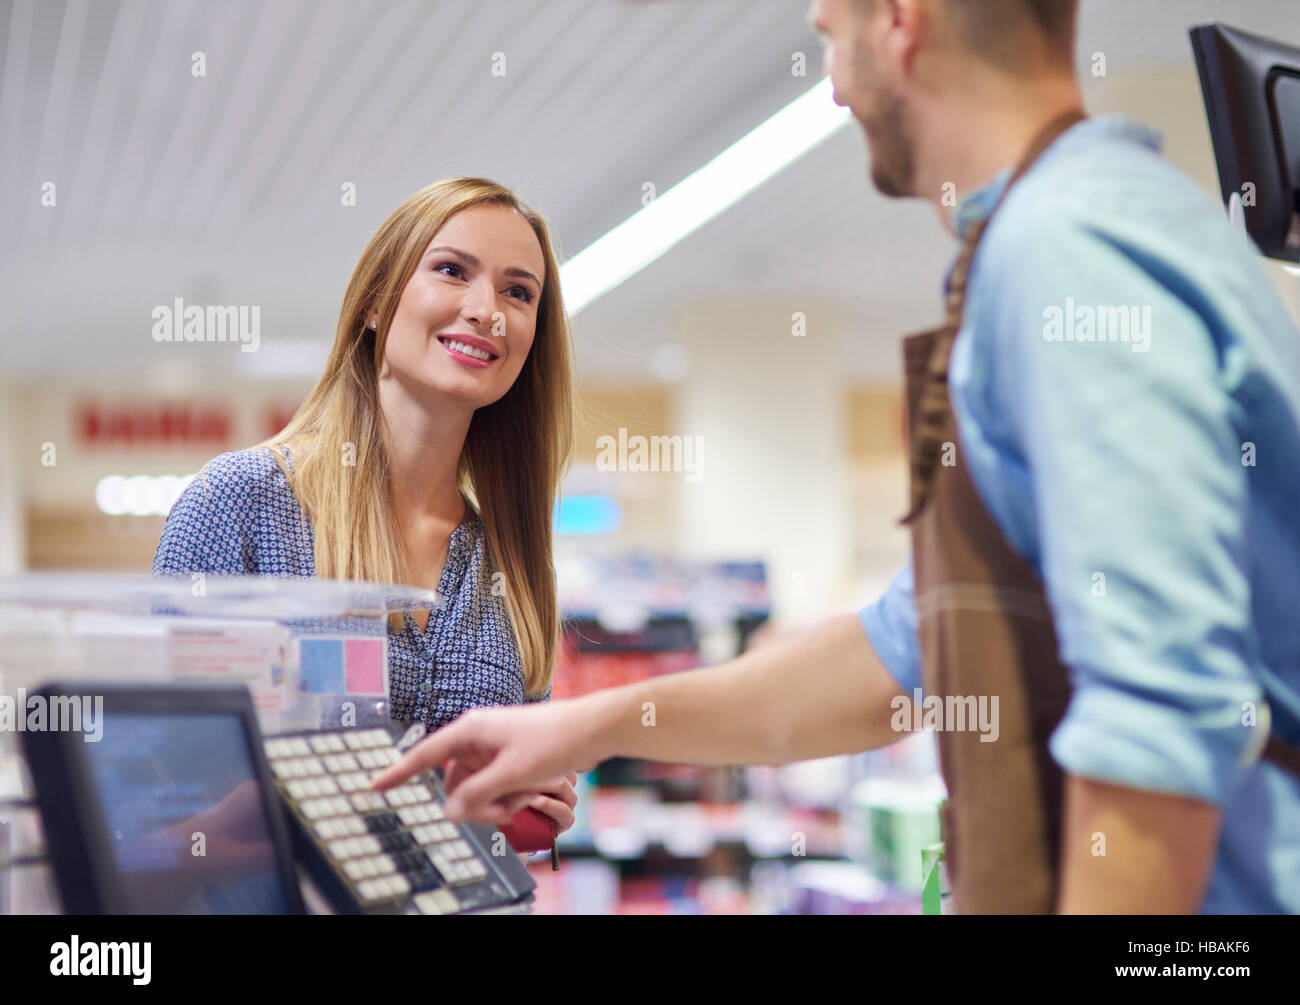 grocery clerk stock photos grocery clerk stock images alamy w next to cash register talking s clerk stock image